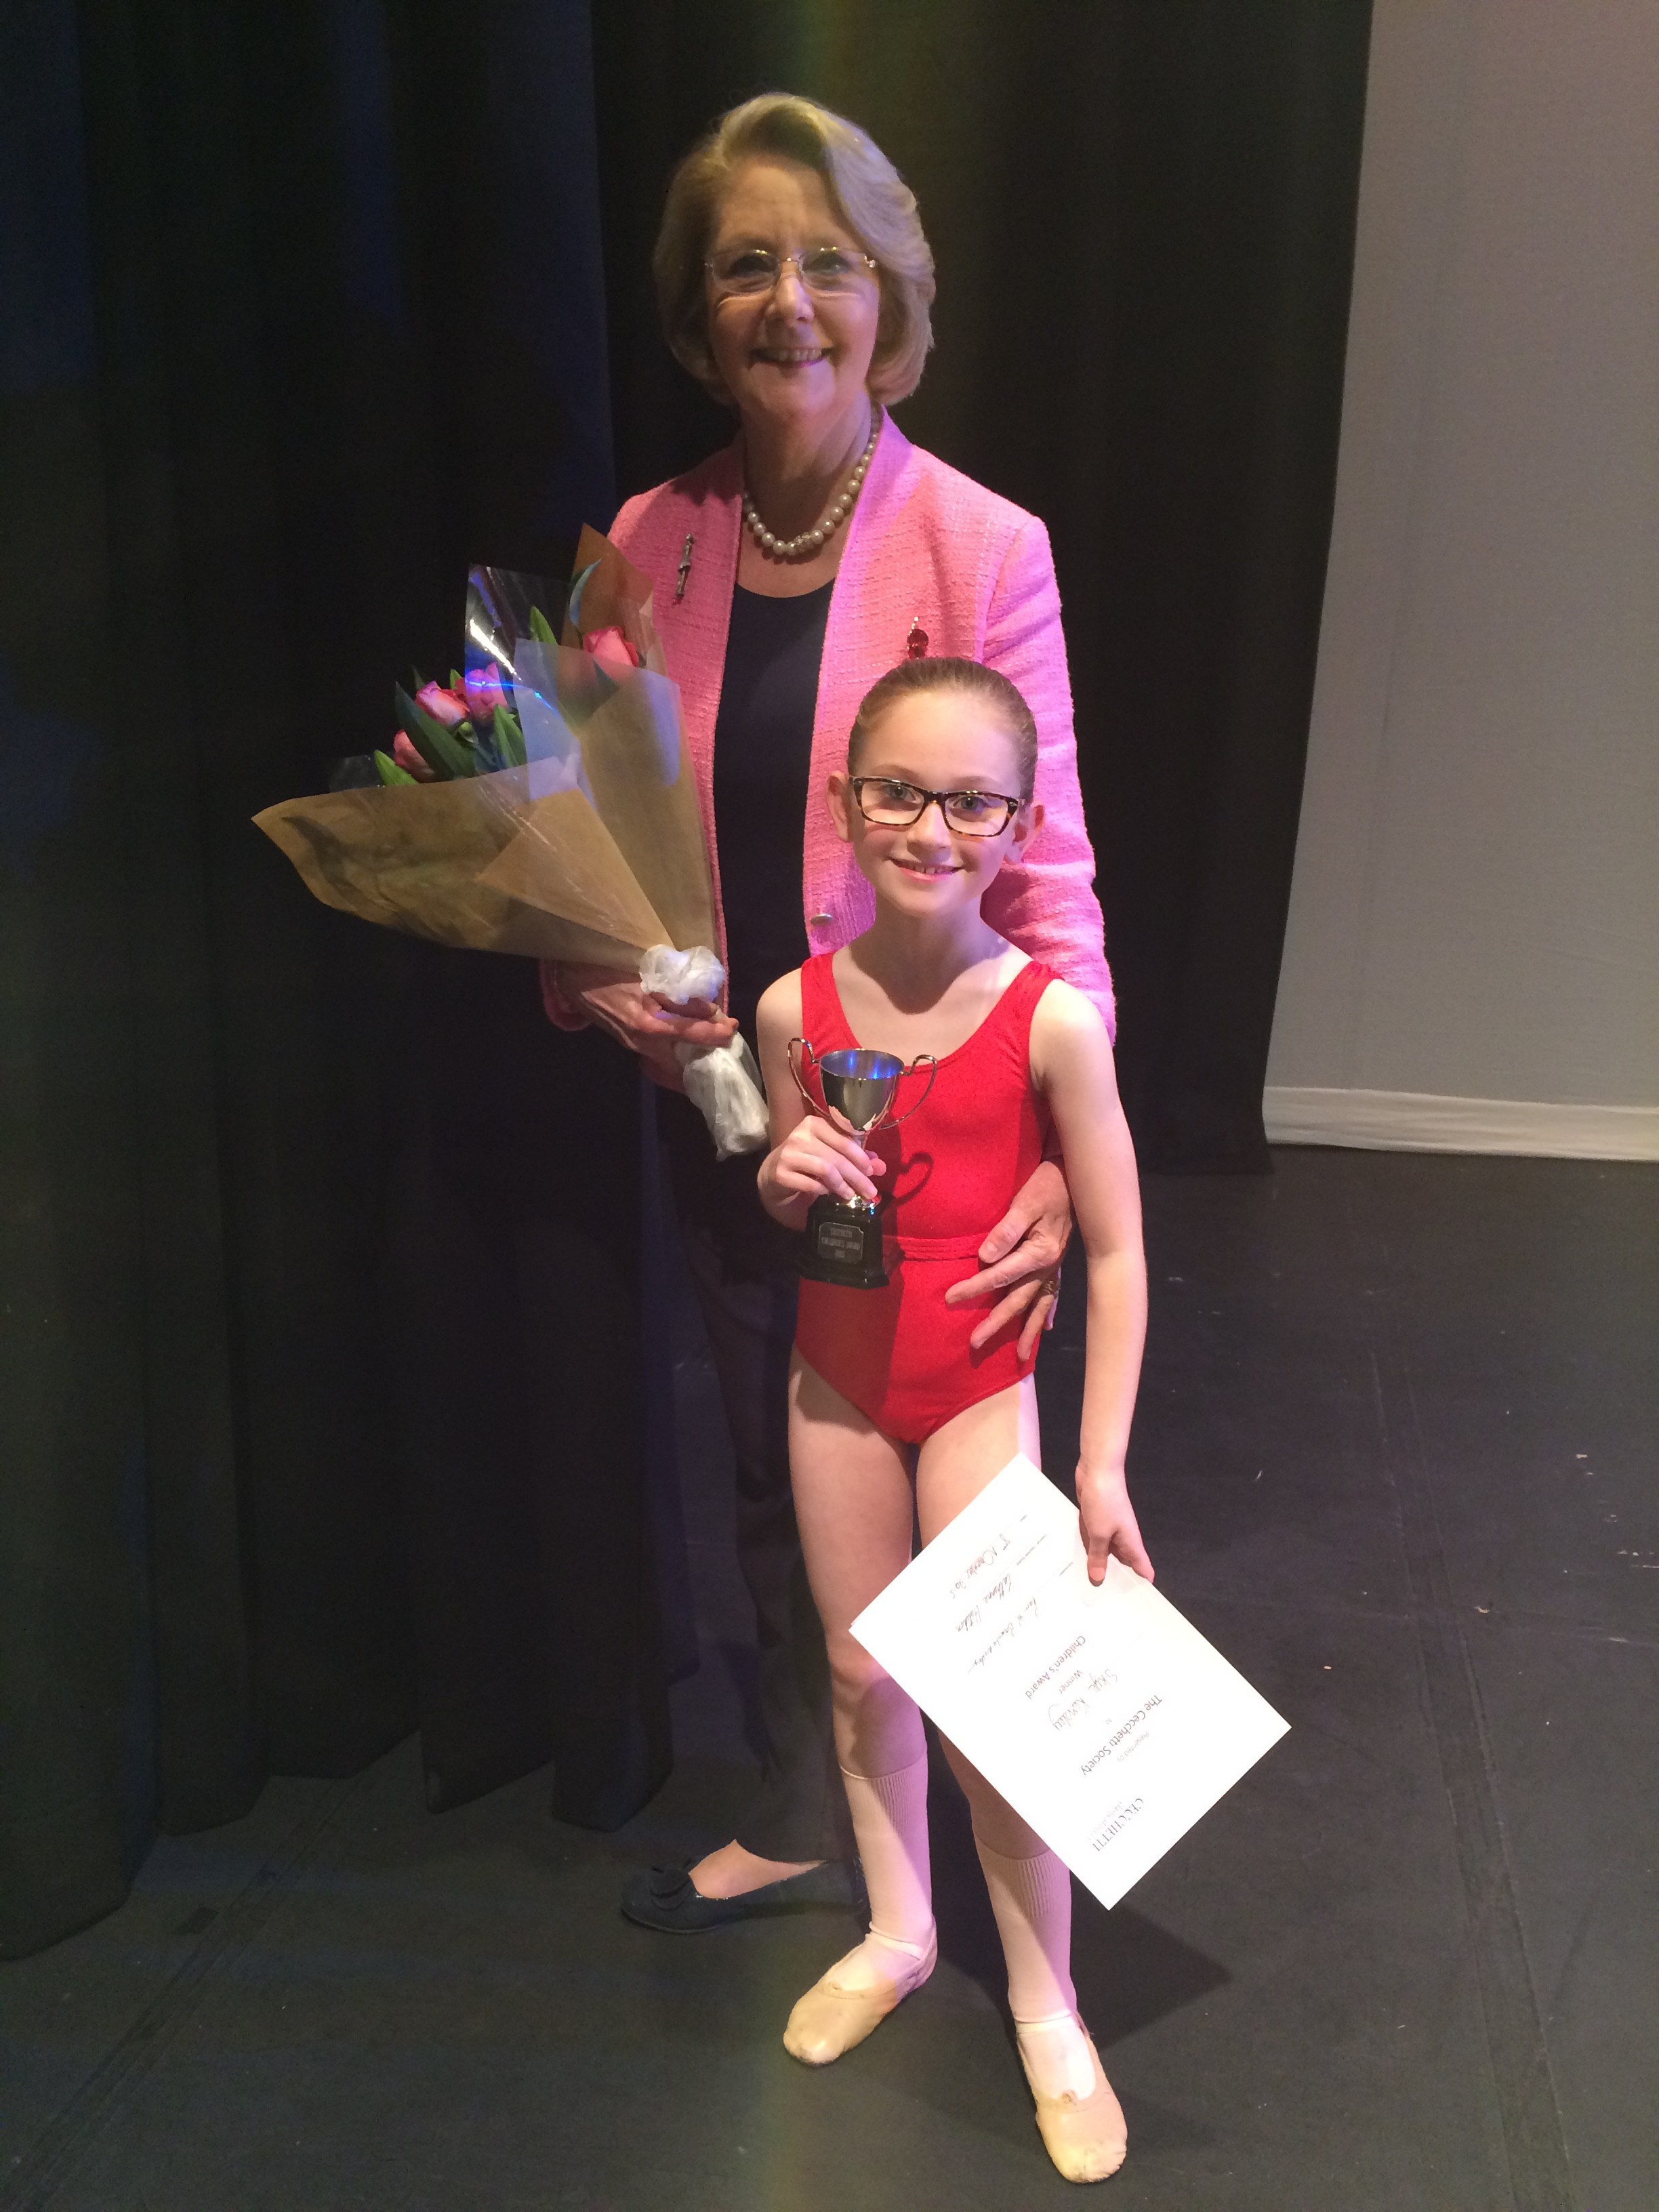 HBS Prize winner with Paris Brownie Notley at 2015 Under 10's Children's Awards